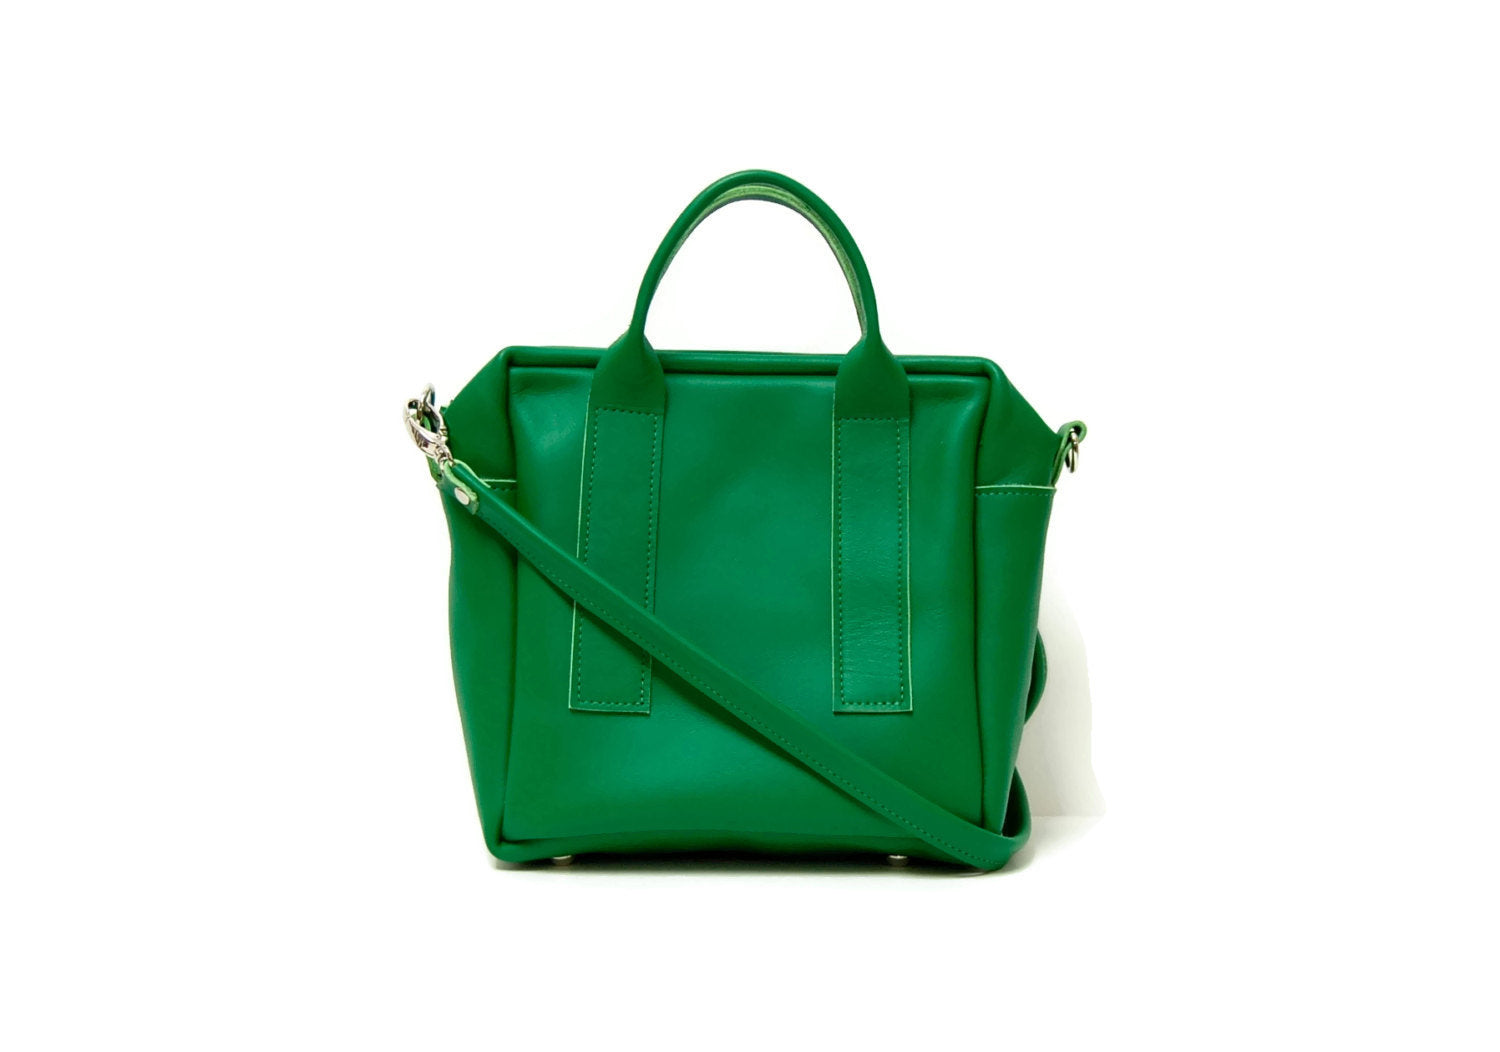 Box Bag in Italian green